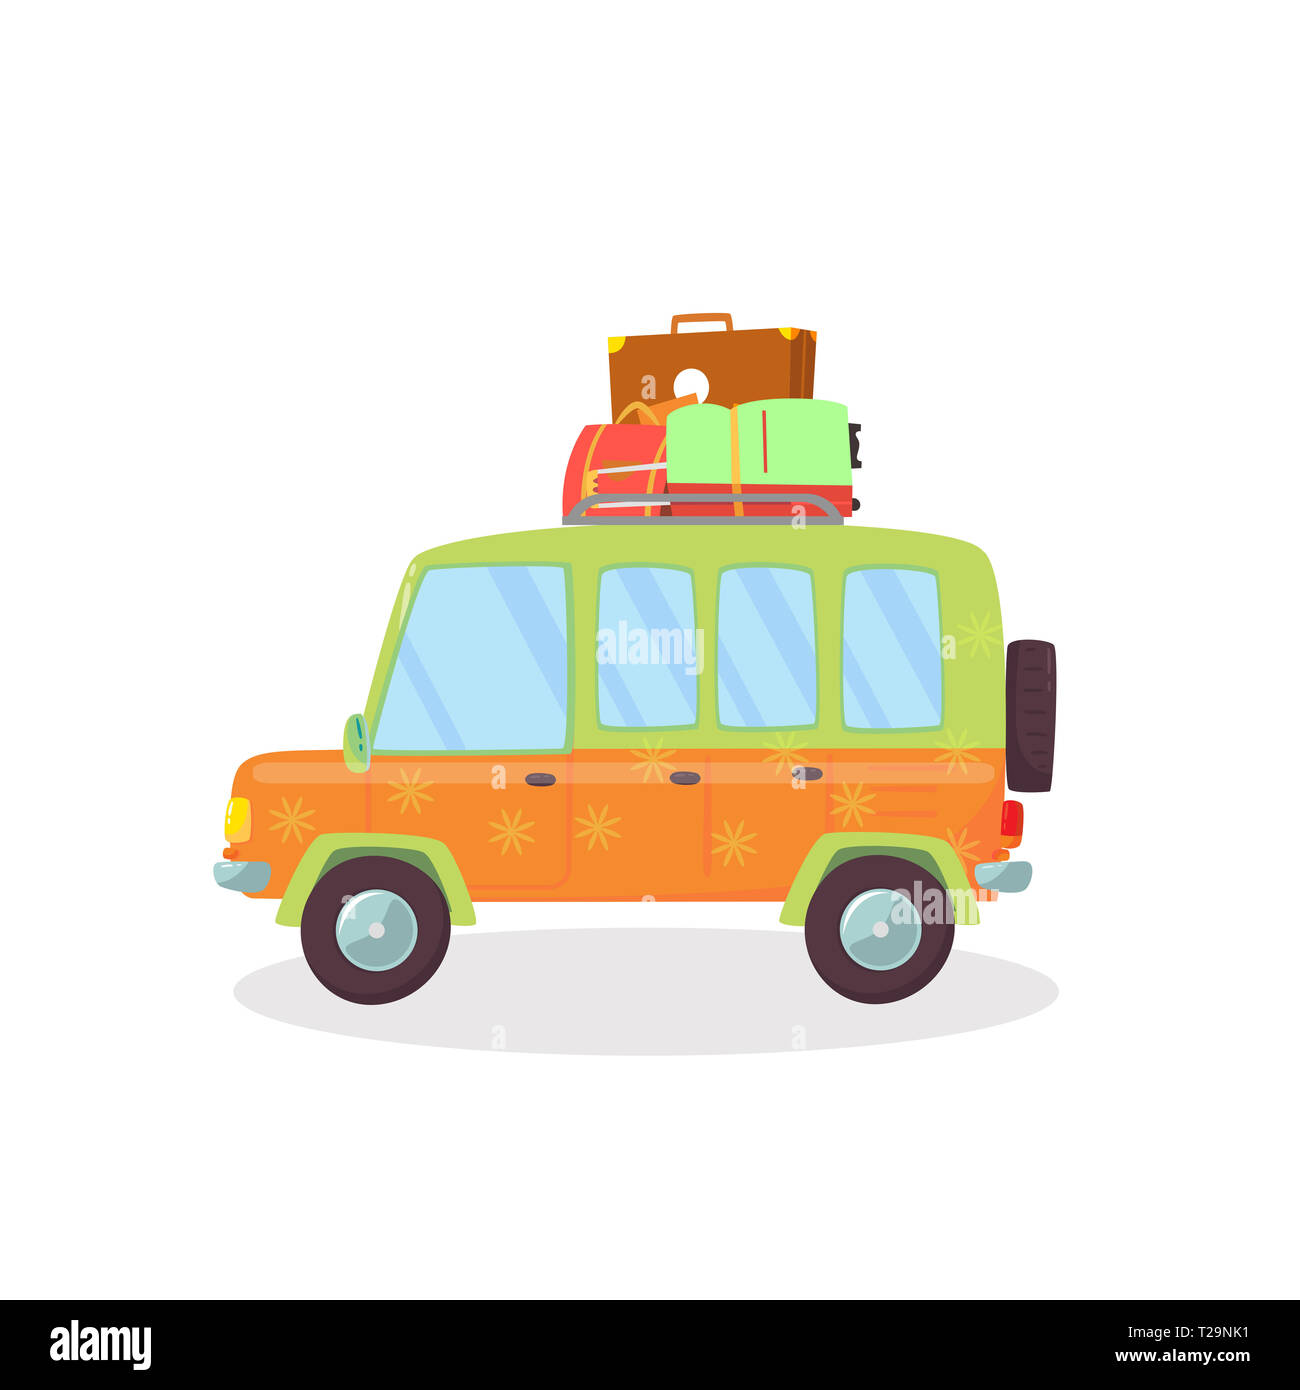 Orange, Green Colored Modern Car with Suitcases on Roof Isolated on White Background. Side View of Comfortable Coupe Automobile for Family Traveling.  - Stock Image